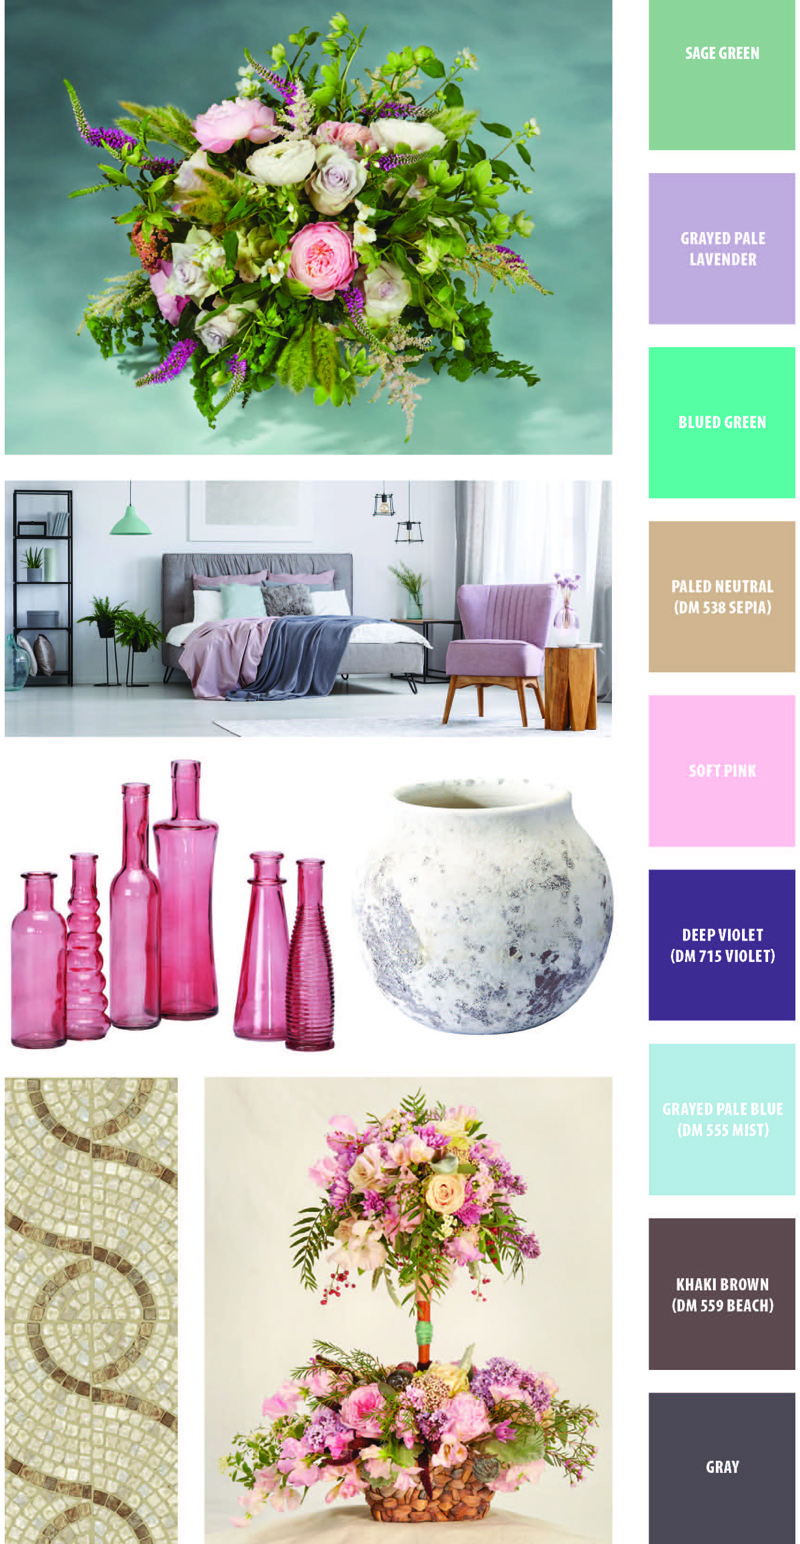 Ethereal Bliss: Containers Flowers and Colors, Sage Green, Grayed Pale Lavender, Blued Green, Paled Neutral DM538 Sepia, Soft Pink, Deep Violet DM715 Violet, Grayed Pale Blue DM555 Mist, Khaki Brown DM559 Beach, Gray